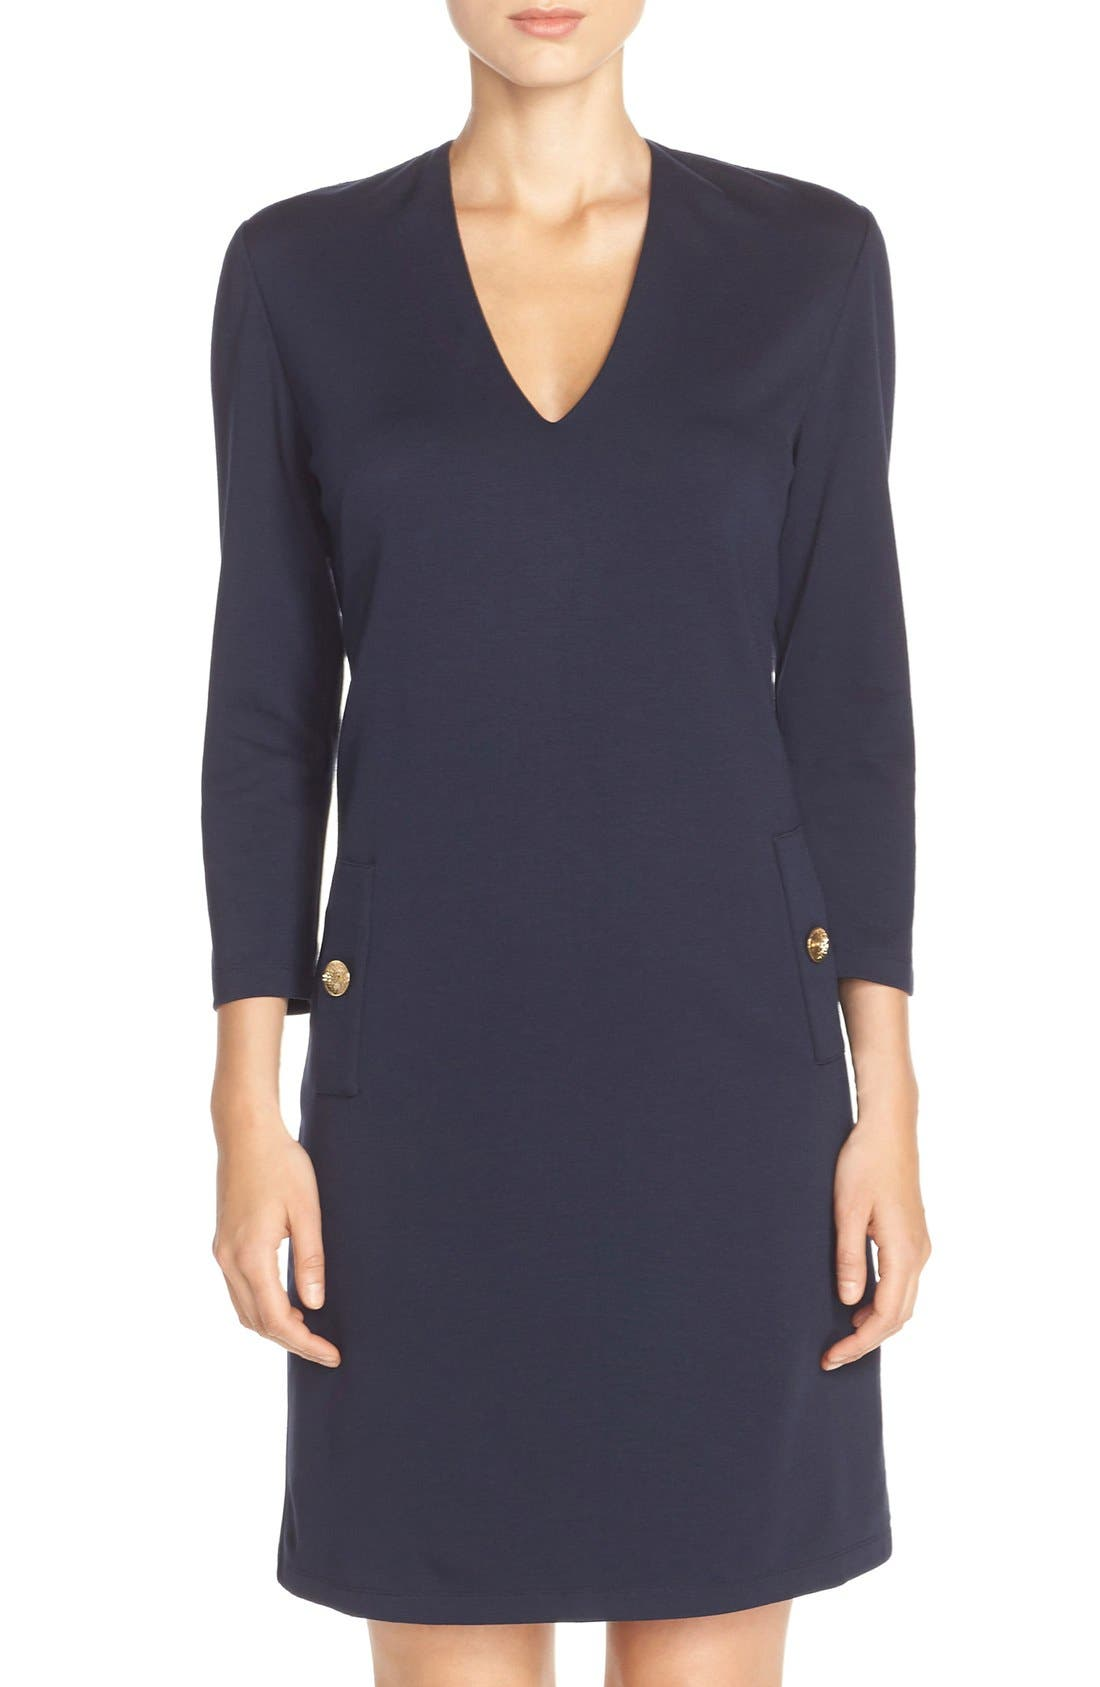 Main Image - Eliza J Button Pockets Ponte A-Line Dress (Regular & Petite)